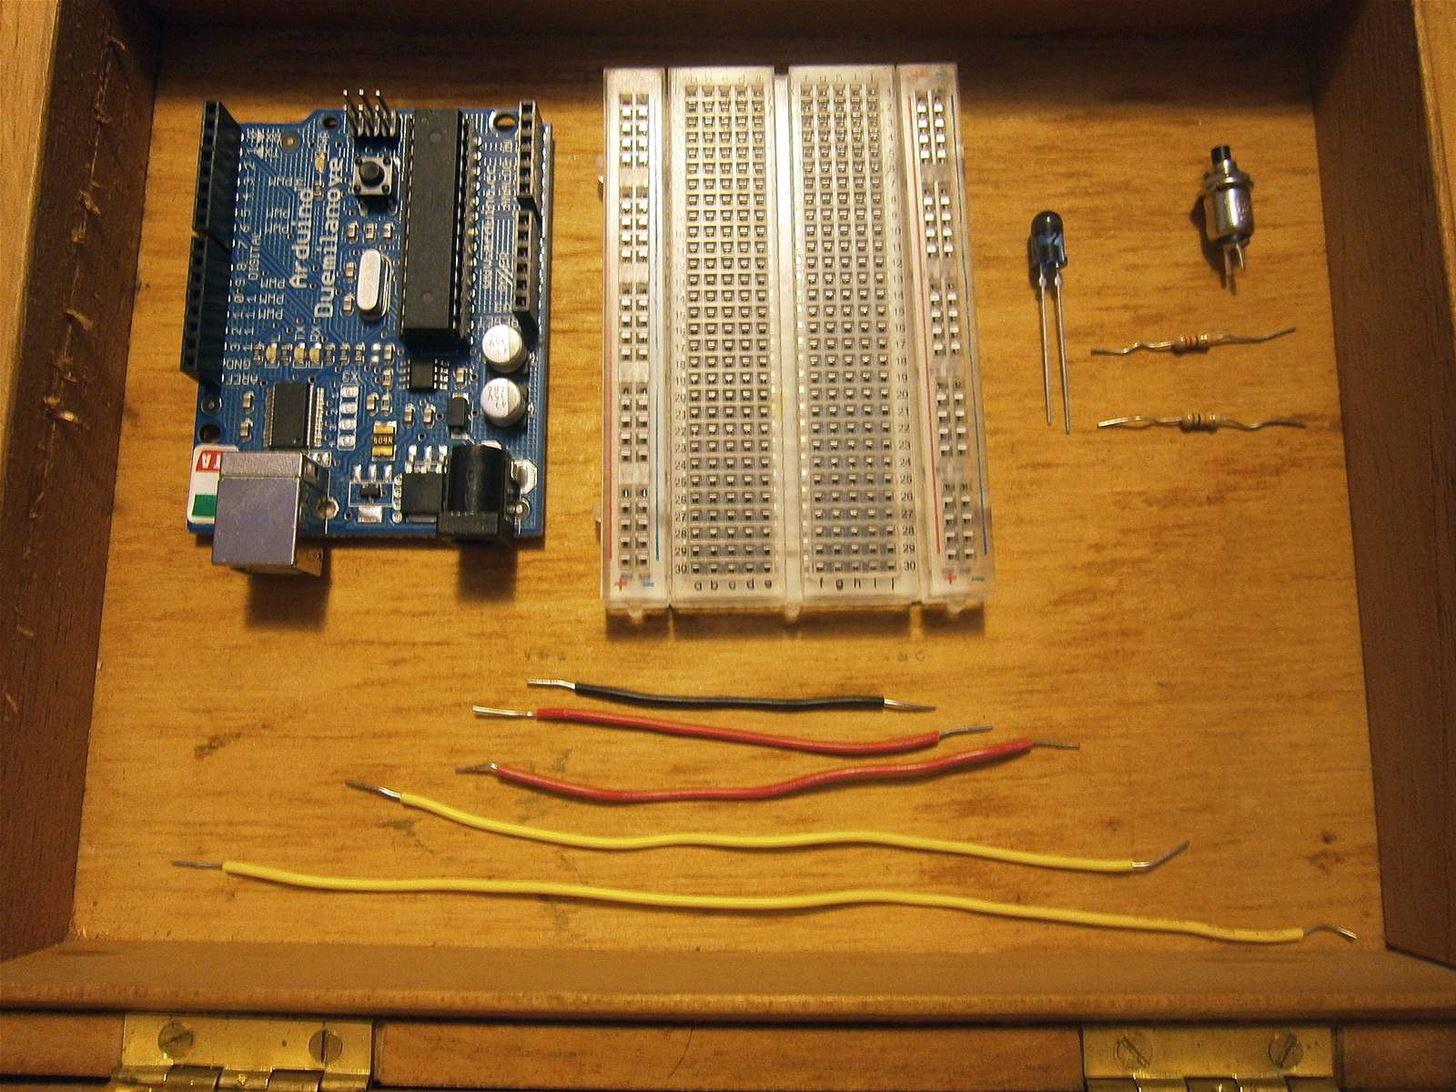 Make Your Own Circuit How To Tv B Gone Silence All Televisions That This Old Cigar Box Makes A Perfect Carrying Case For Tiny Components